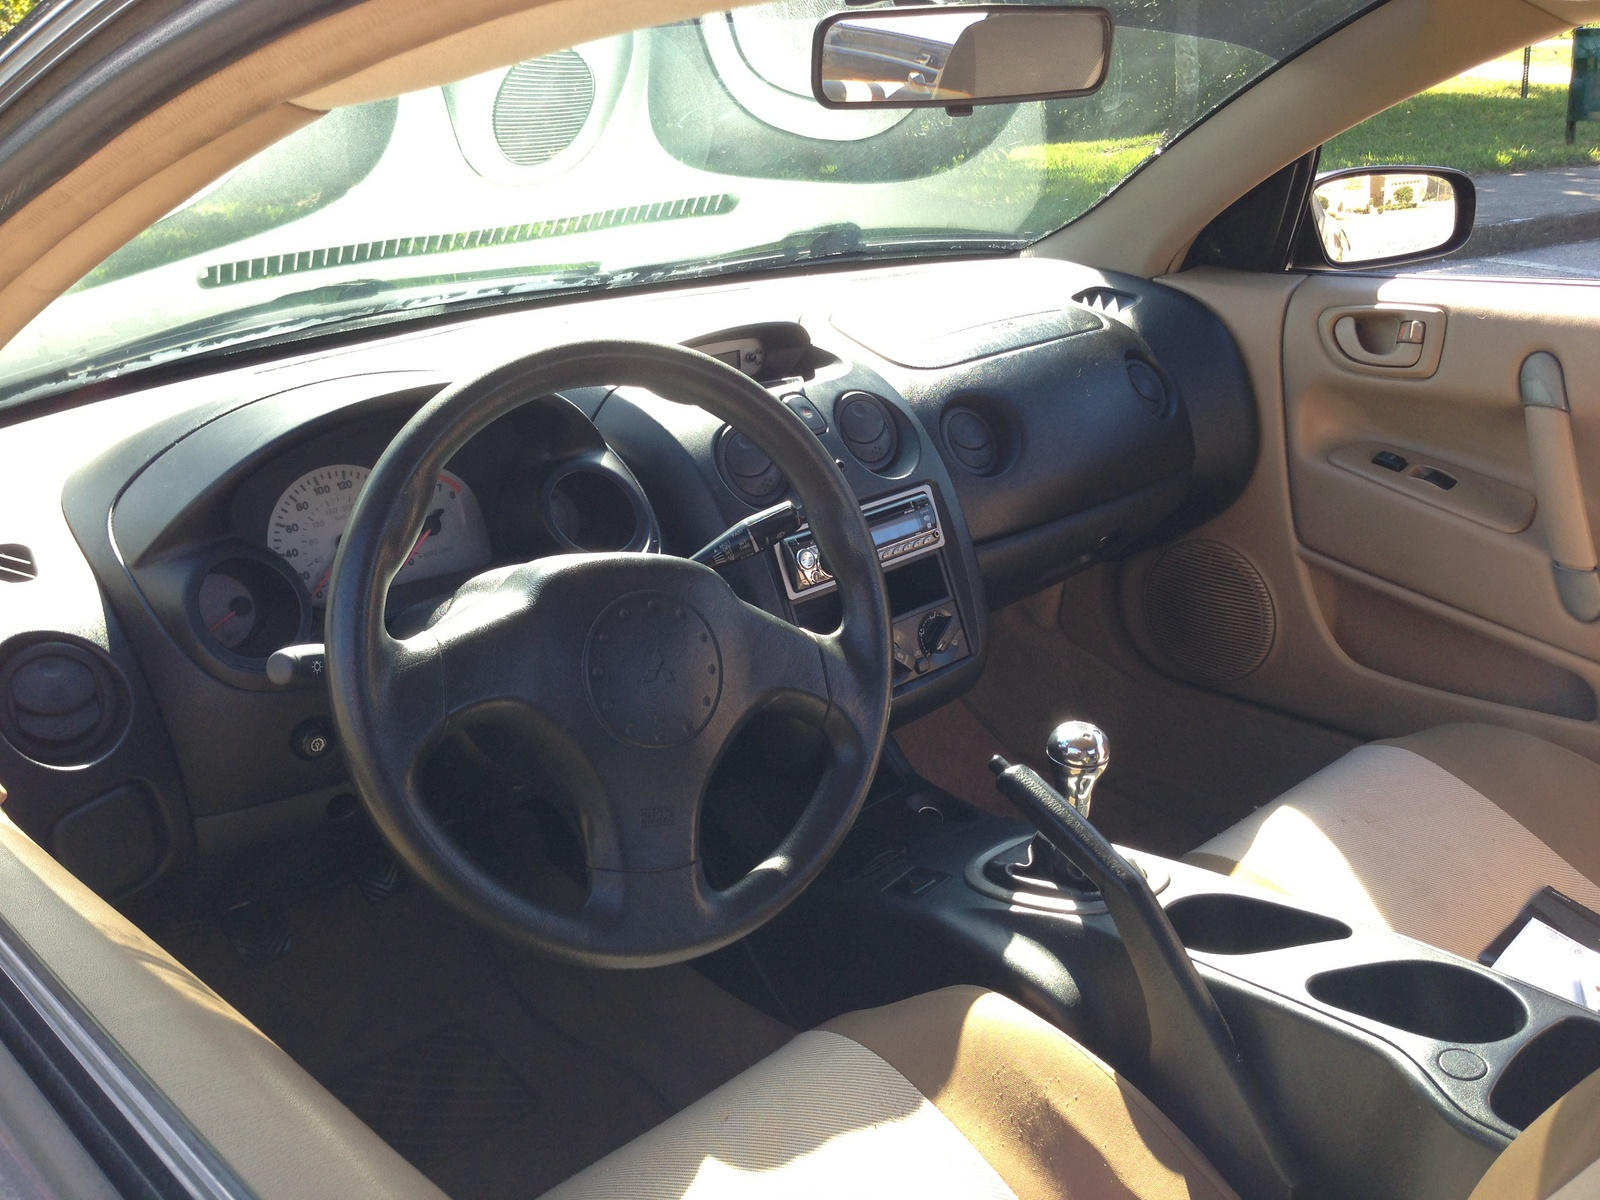 2000 Mitsubishi Eclipse Interior Images & Pictures - Becuo